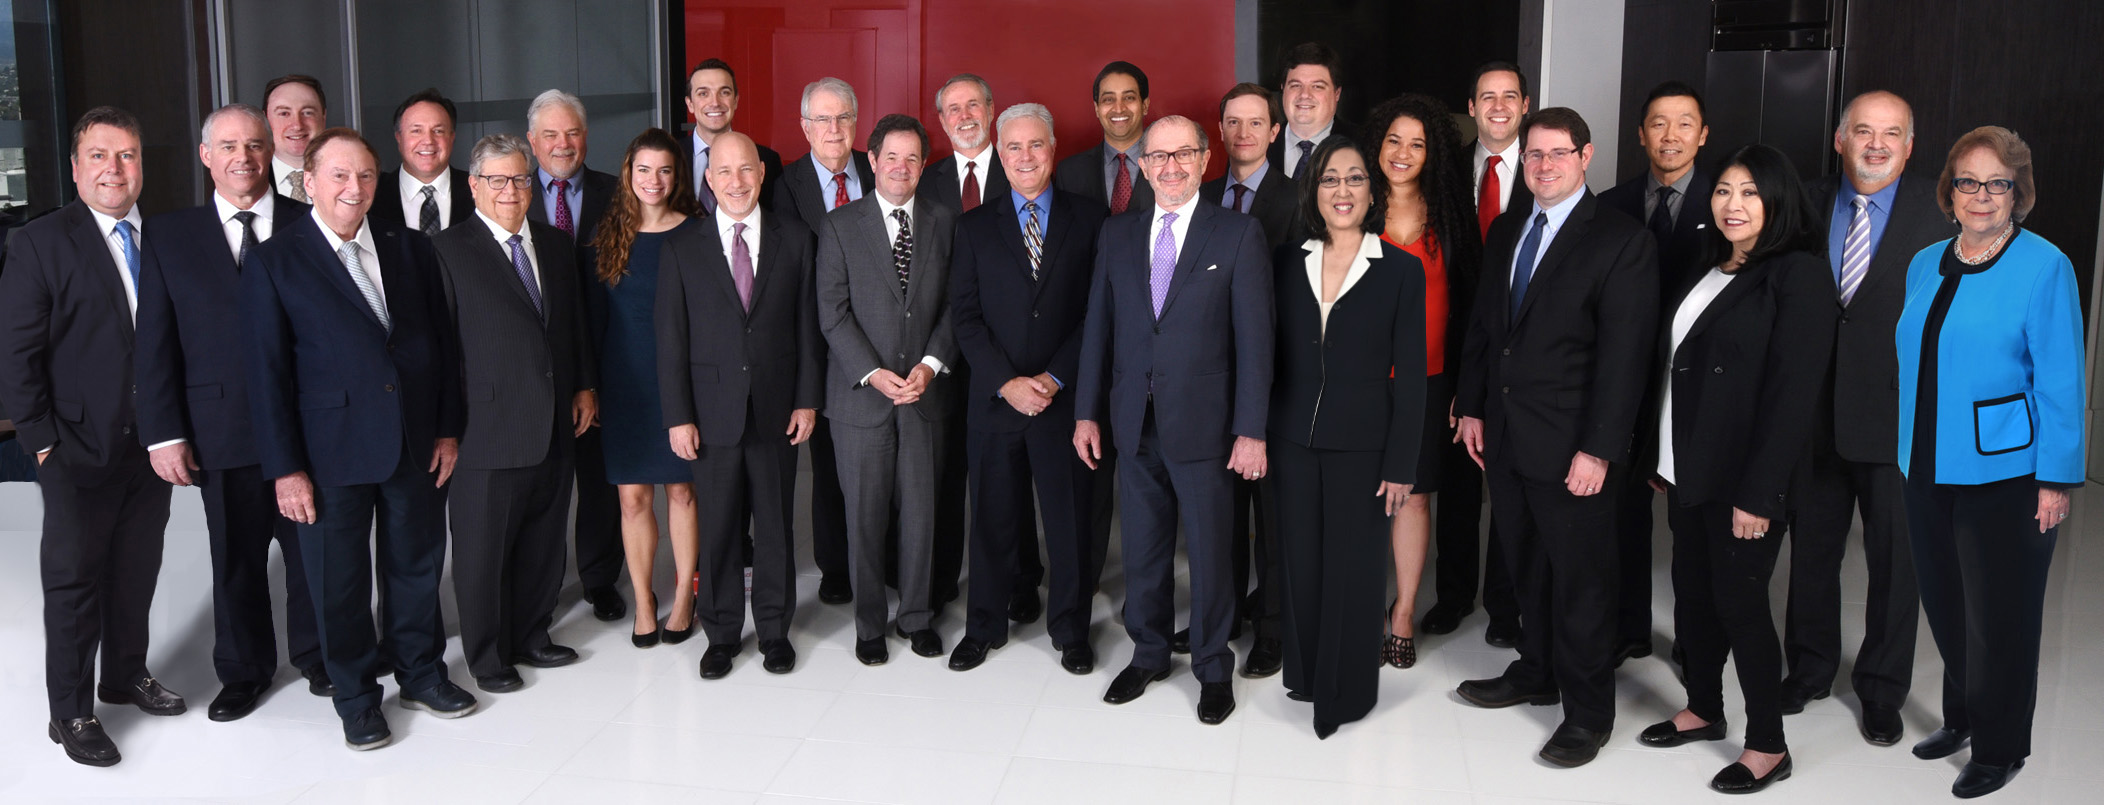 Attorneys and staff at Frandzel Law, Los Angeles